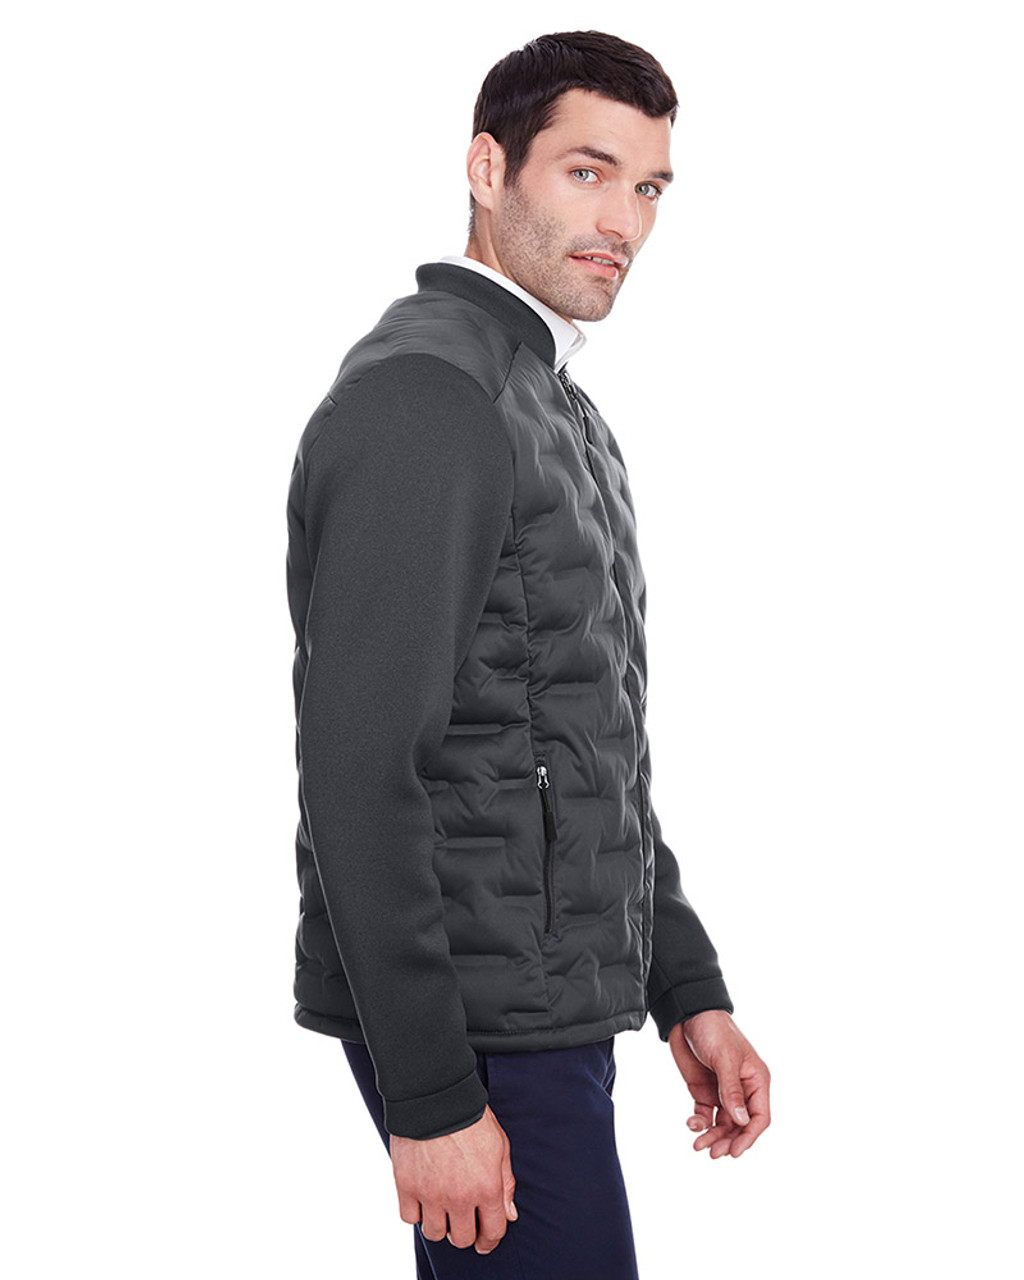 Carbon/Black Heather/Black - side, NE710 Ash City - North End Men's Pioneer Hybrid Bomber Jacket